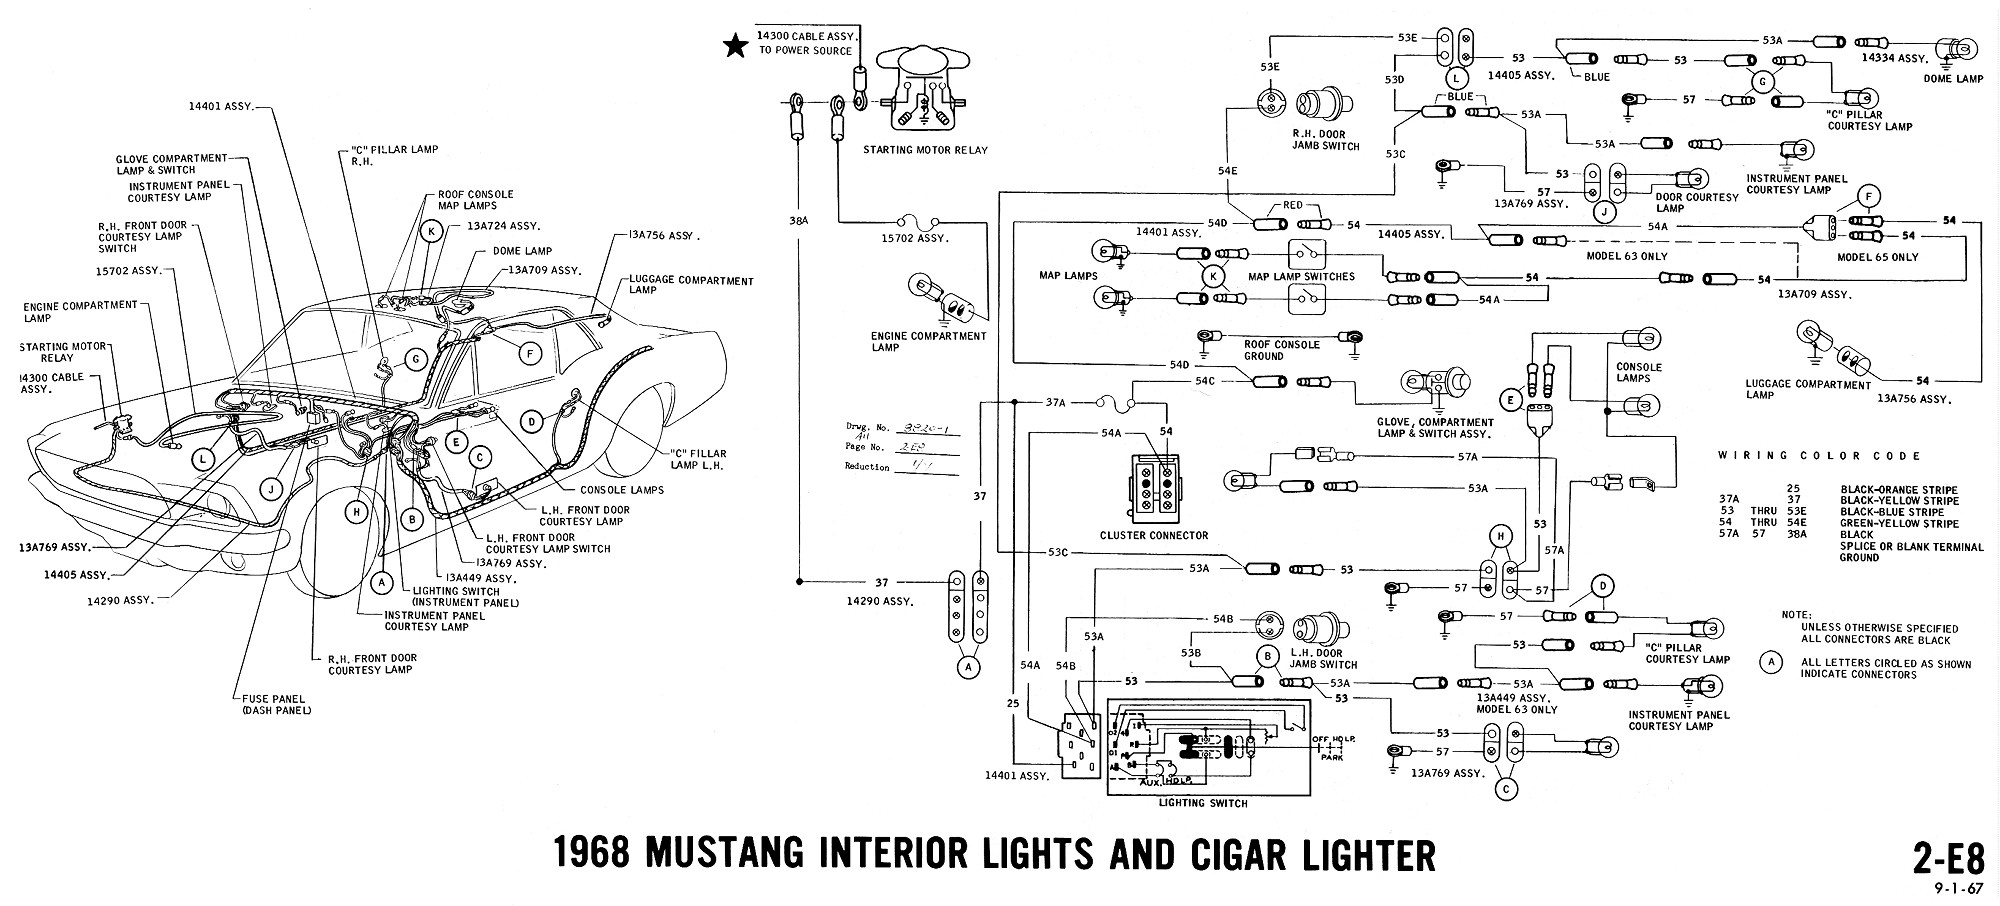 6r9lh Cadillac Fleetwood Brougham Rwd 1985 Cadillac Fleetwood additionally Spartan Trailer Wiring Diagram further Fleetwood Motorhome Wiring Diagram 2010 Workhorse besides 1968 Mustang Wiring Diagram Vacuum Schematics besides 98 Suburban Ac Wiring Diagram. on chevy tail light wiring diagram